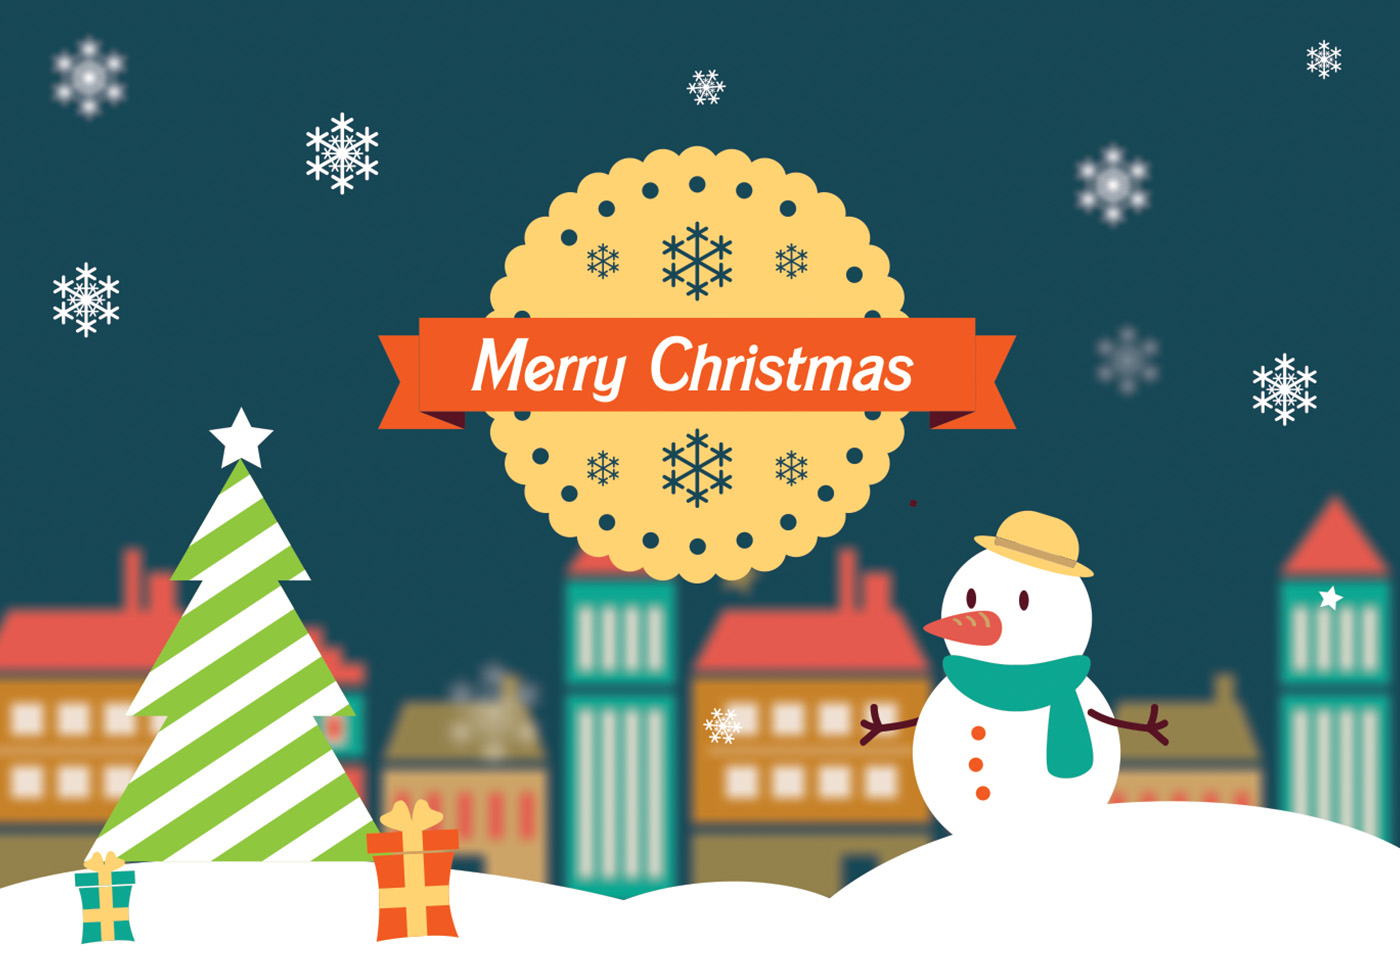 Merry Christmas Landscape Vector  Download Free Vector